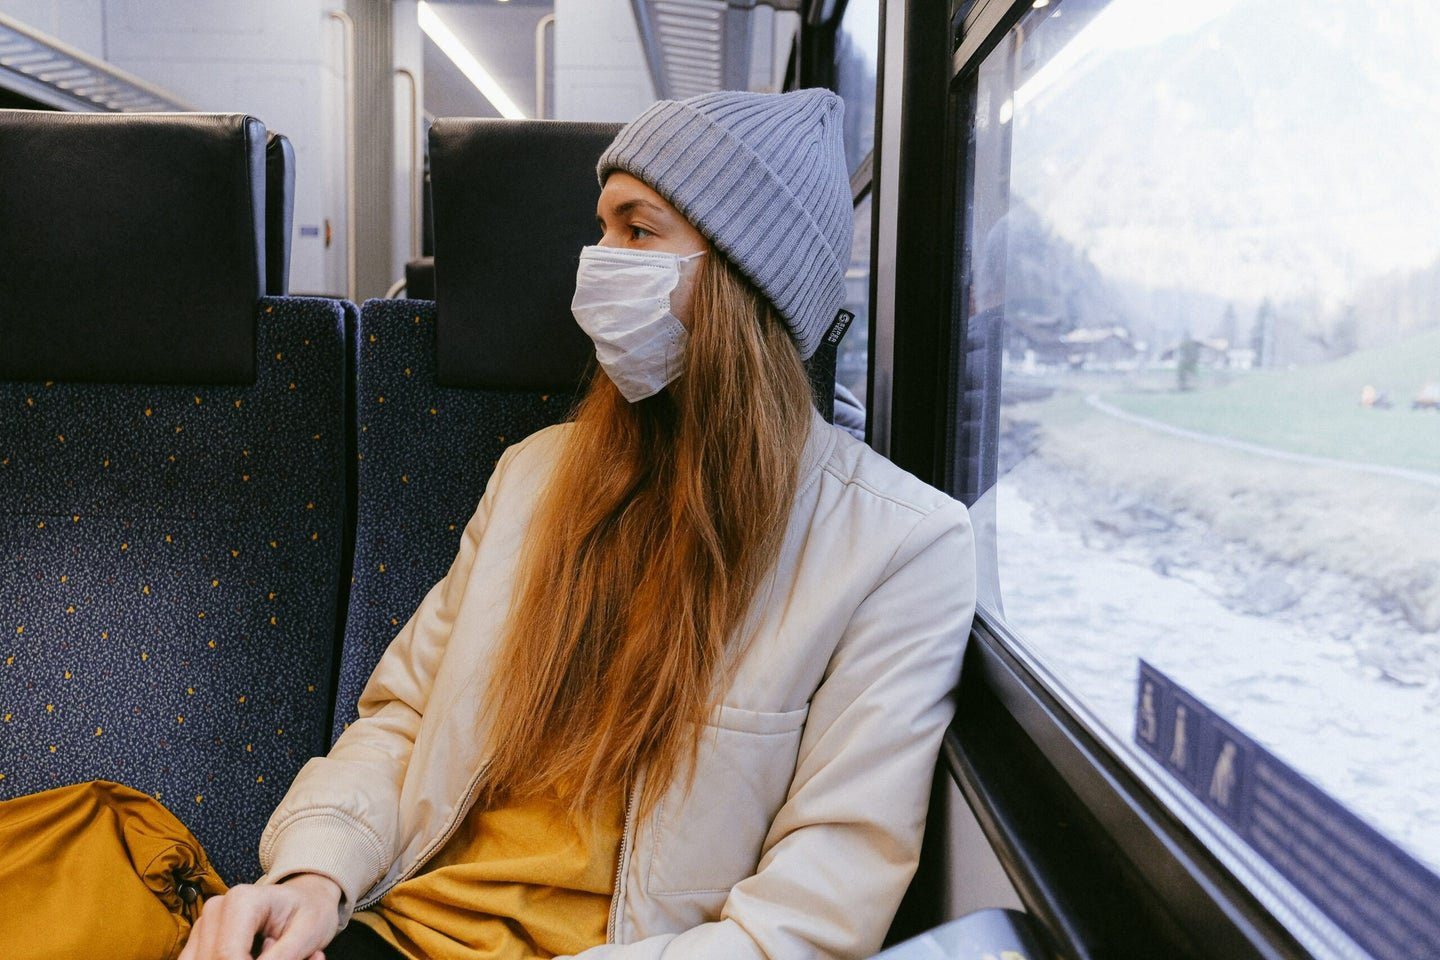 Wearing a mask could protect you from COVID-19 in more ways than you think